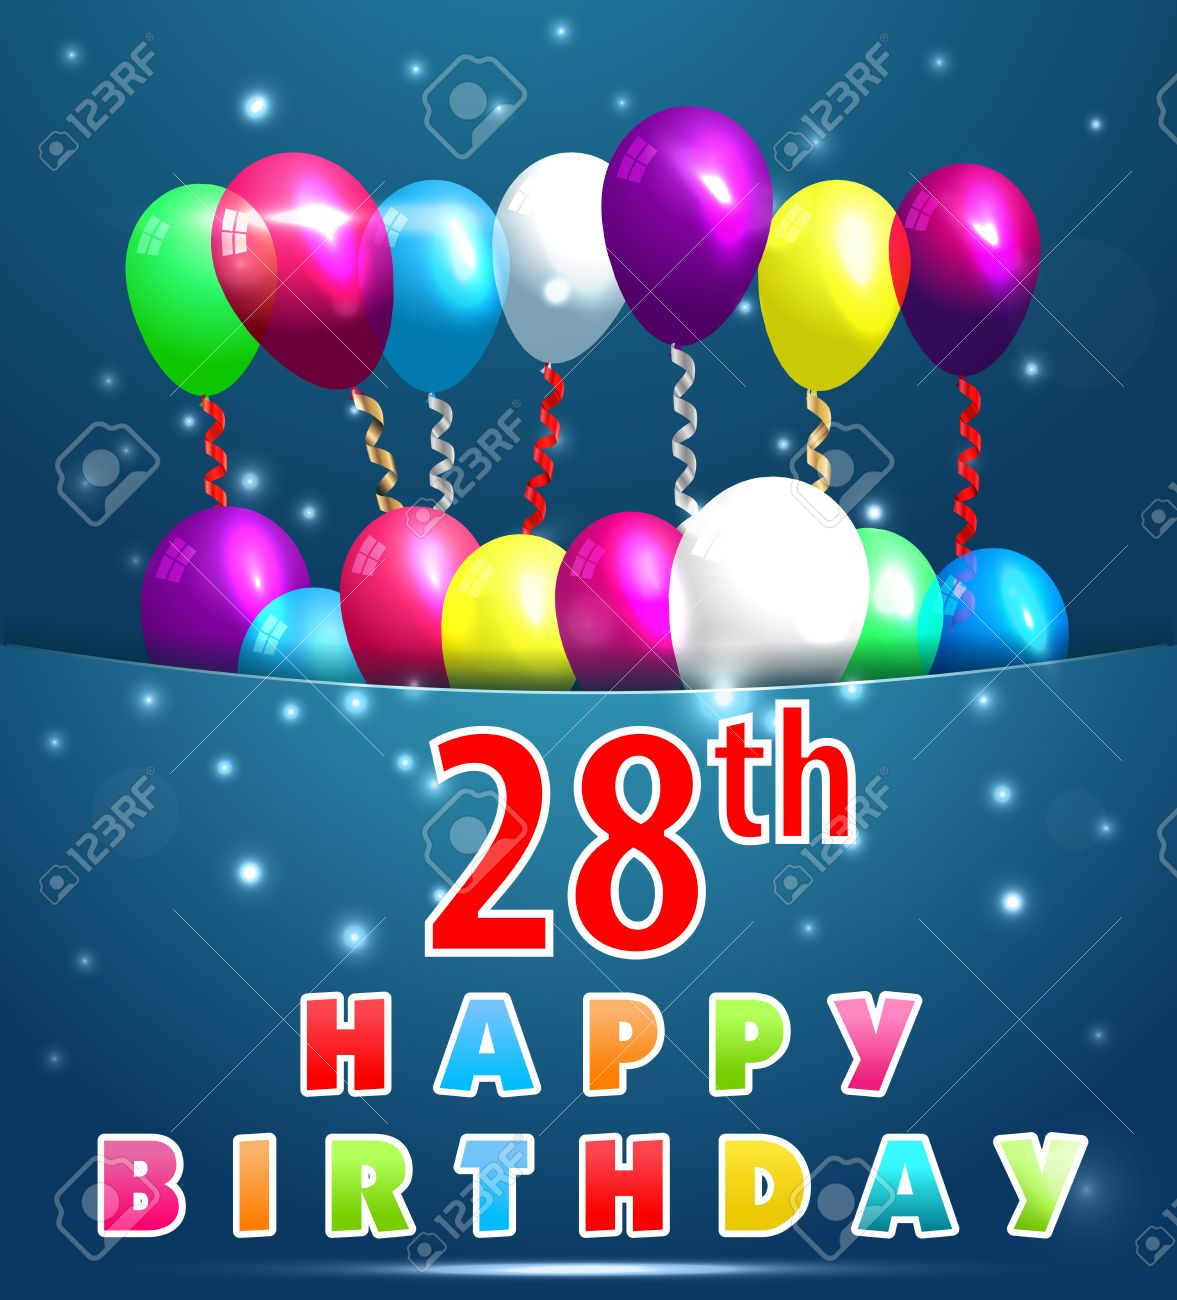 28 year happy birthday card with balloons and ribbons 28th birthday 28 year happy birthday card with balloons and ribbons 28th birthday stock vector 36932849 bookmarktalkfo Gallery